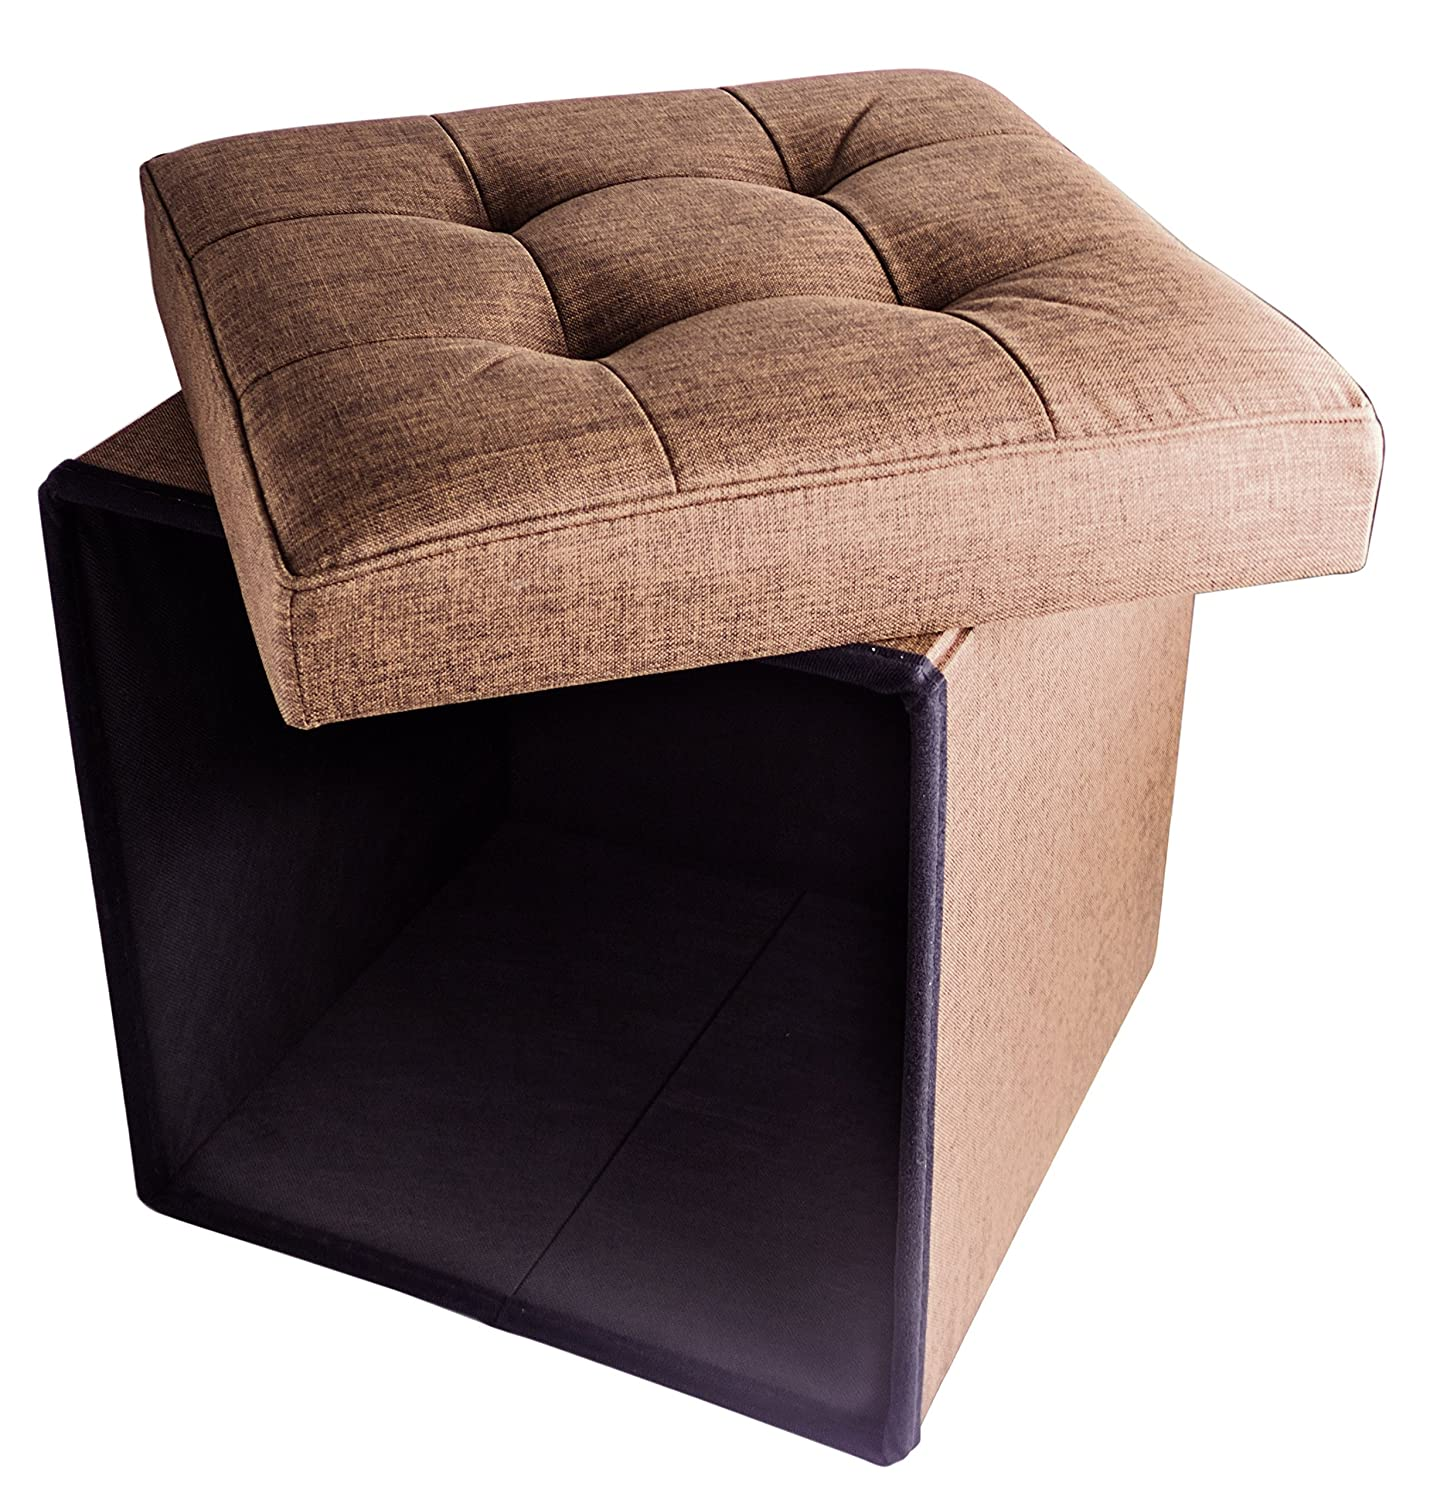 """Red Co. Folding Cube Storage Ottoman with Padded Seat, 15"""" x 15"""" - Taupe"""